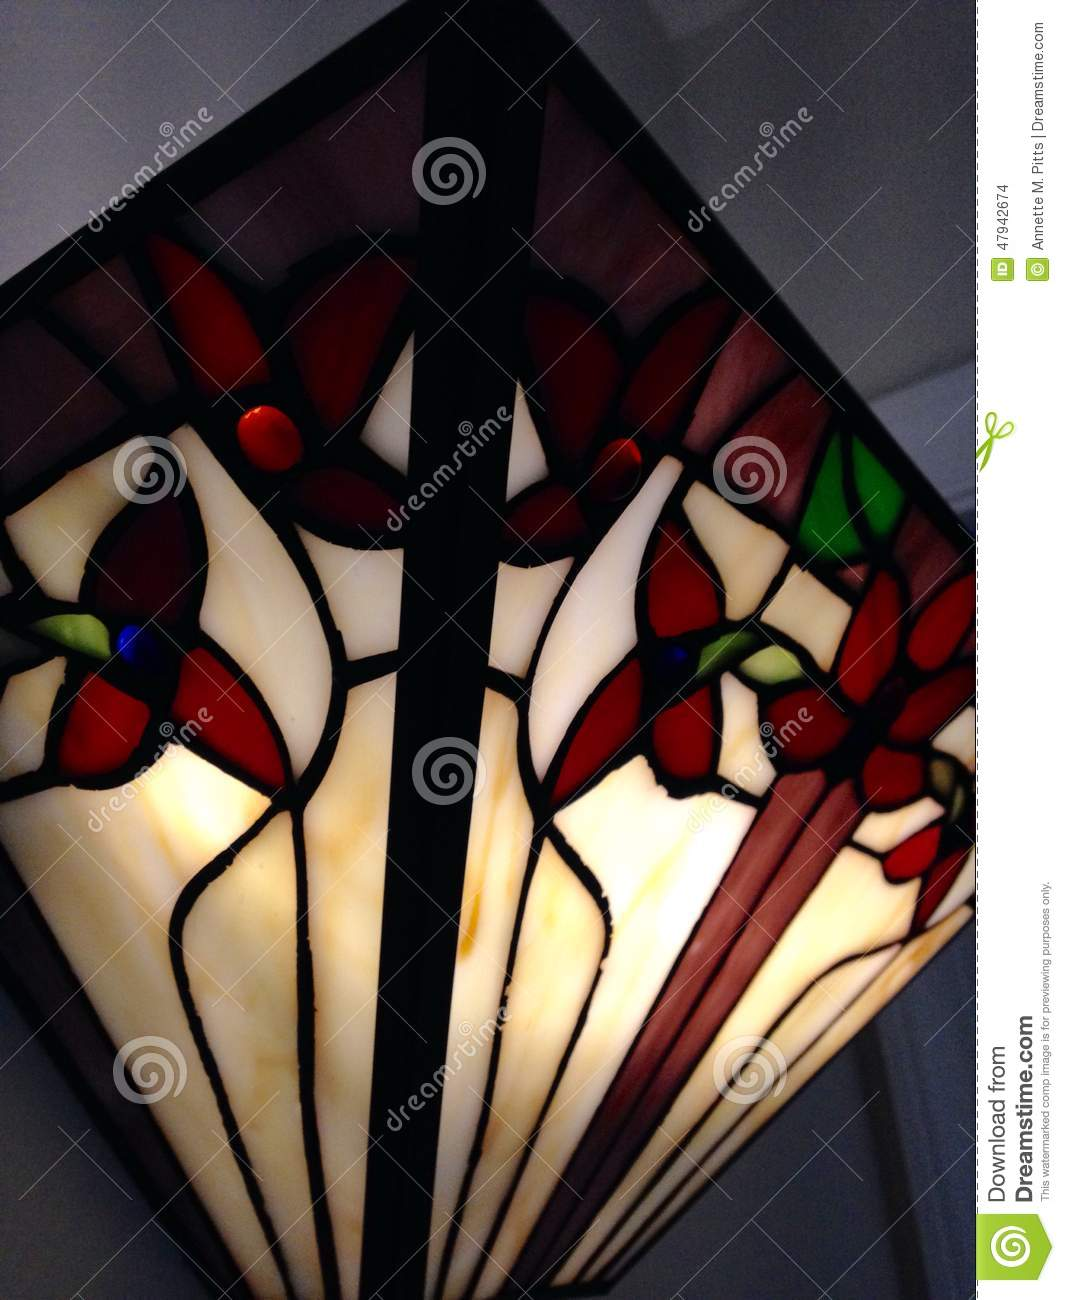 Stained Glass Sconce Stock Photo - Image: 47942674